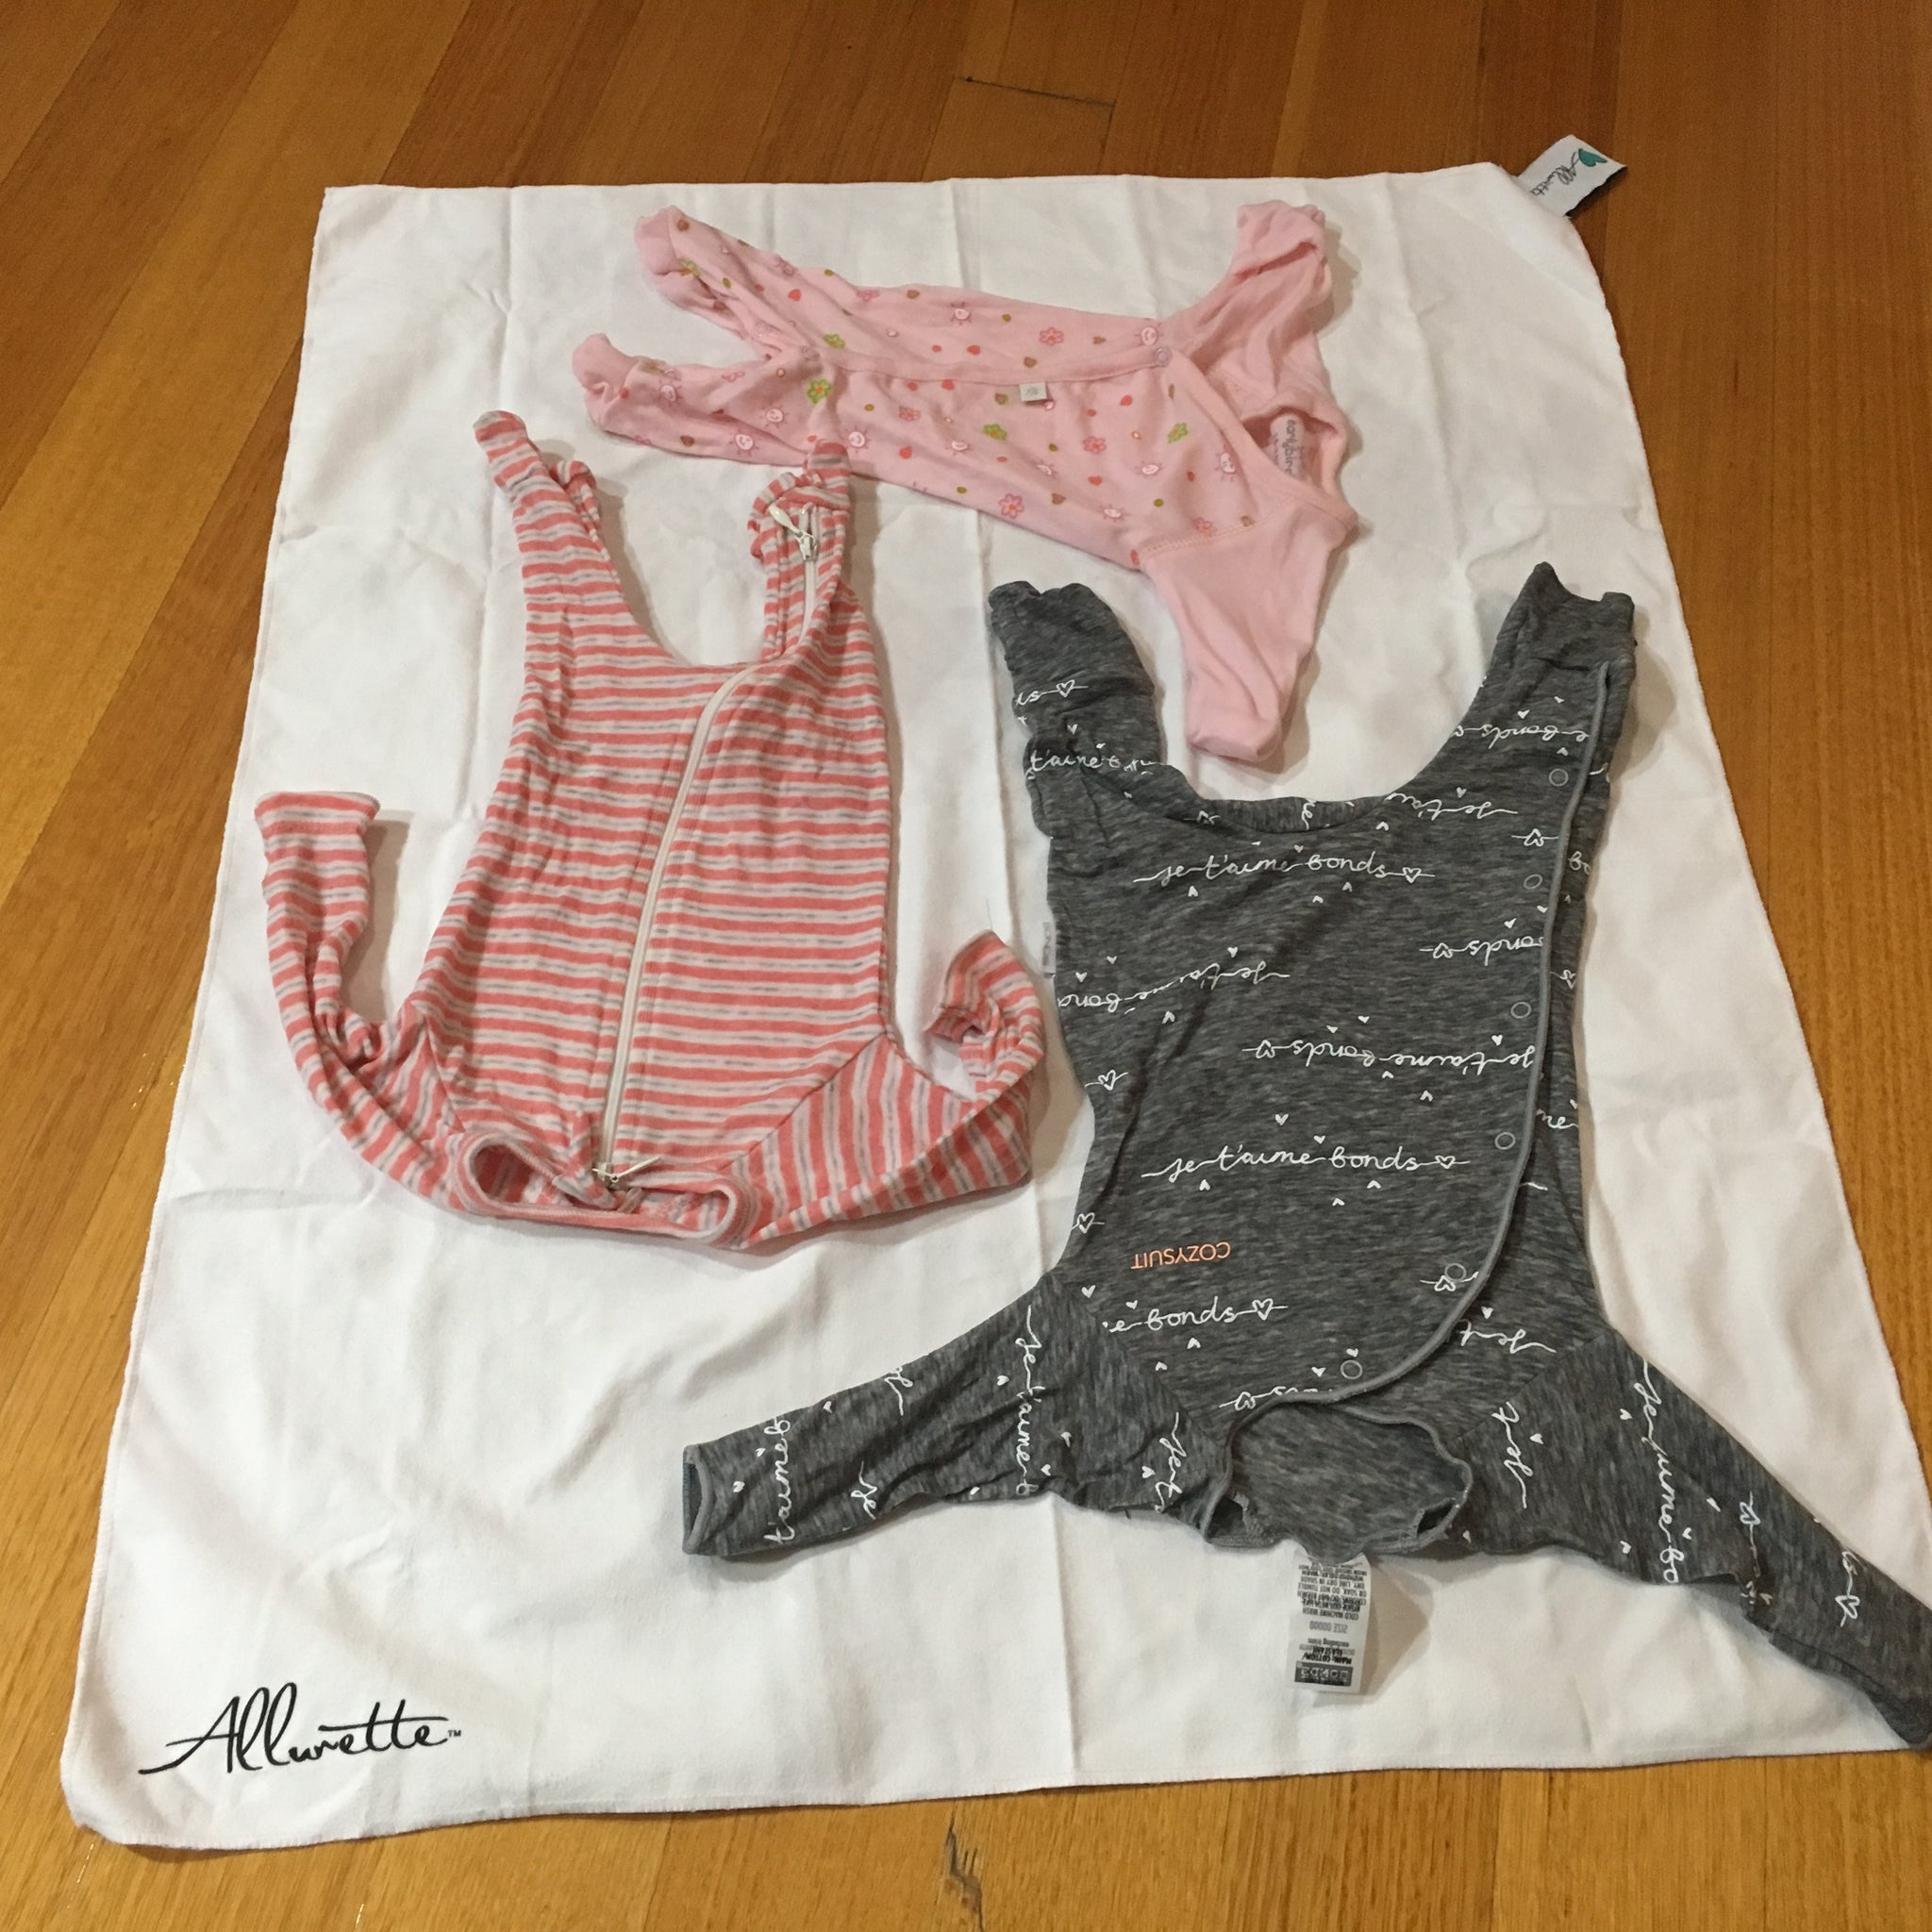 How To Wash Baby Clothes My Allurette